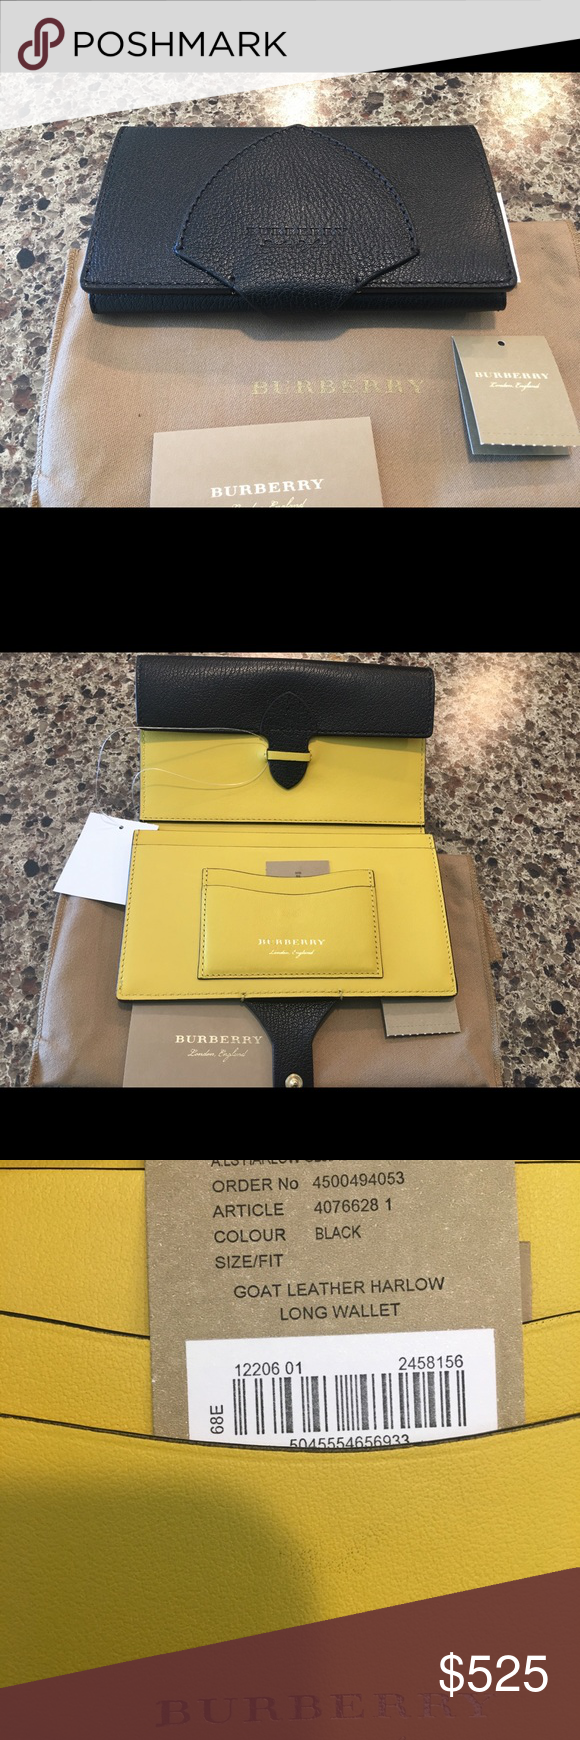 1ad8560d6892 NWT Burberry Two Tone Shield Wallet From the 2018 fall collection the wallet  has an Burberry